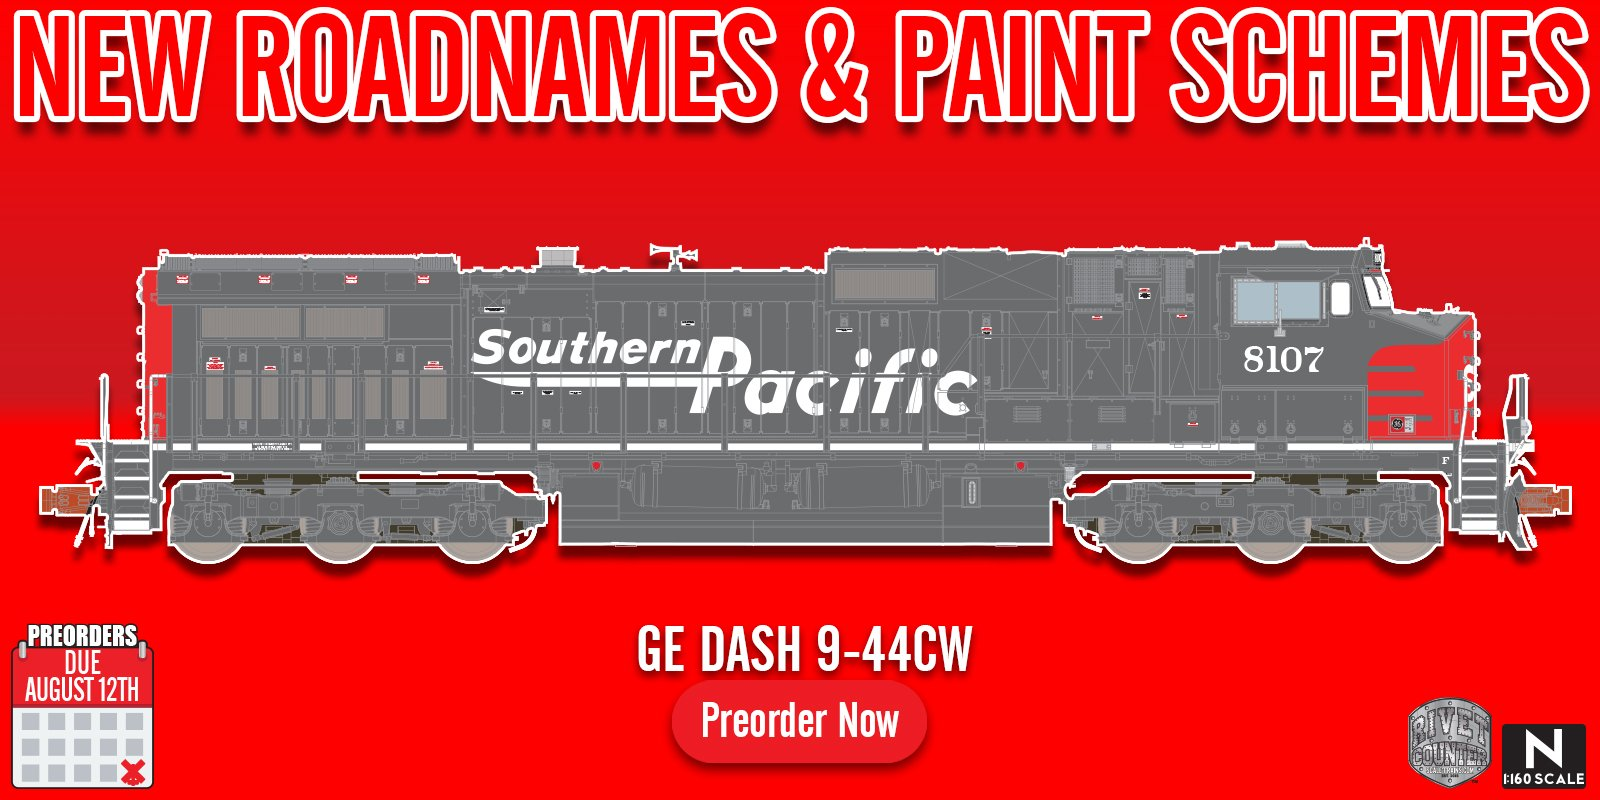 Preorders Special: Rivet Counter HO Scale Trinity 31K Crude Oil & Ethanol Tank Car by ScaleTrains.com